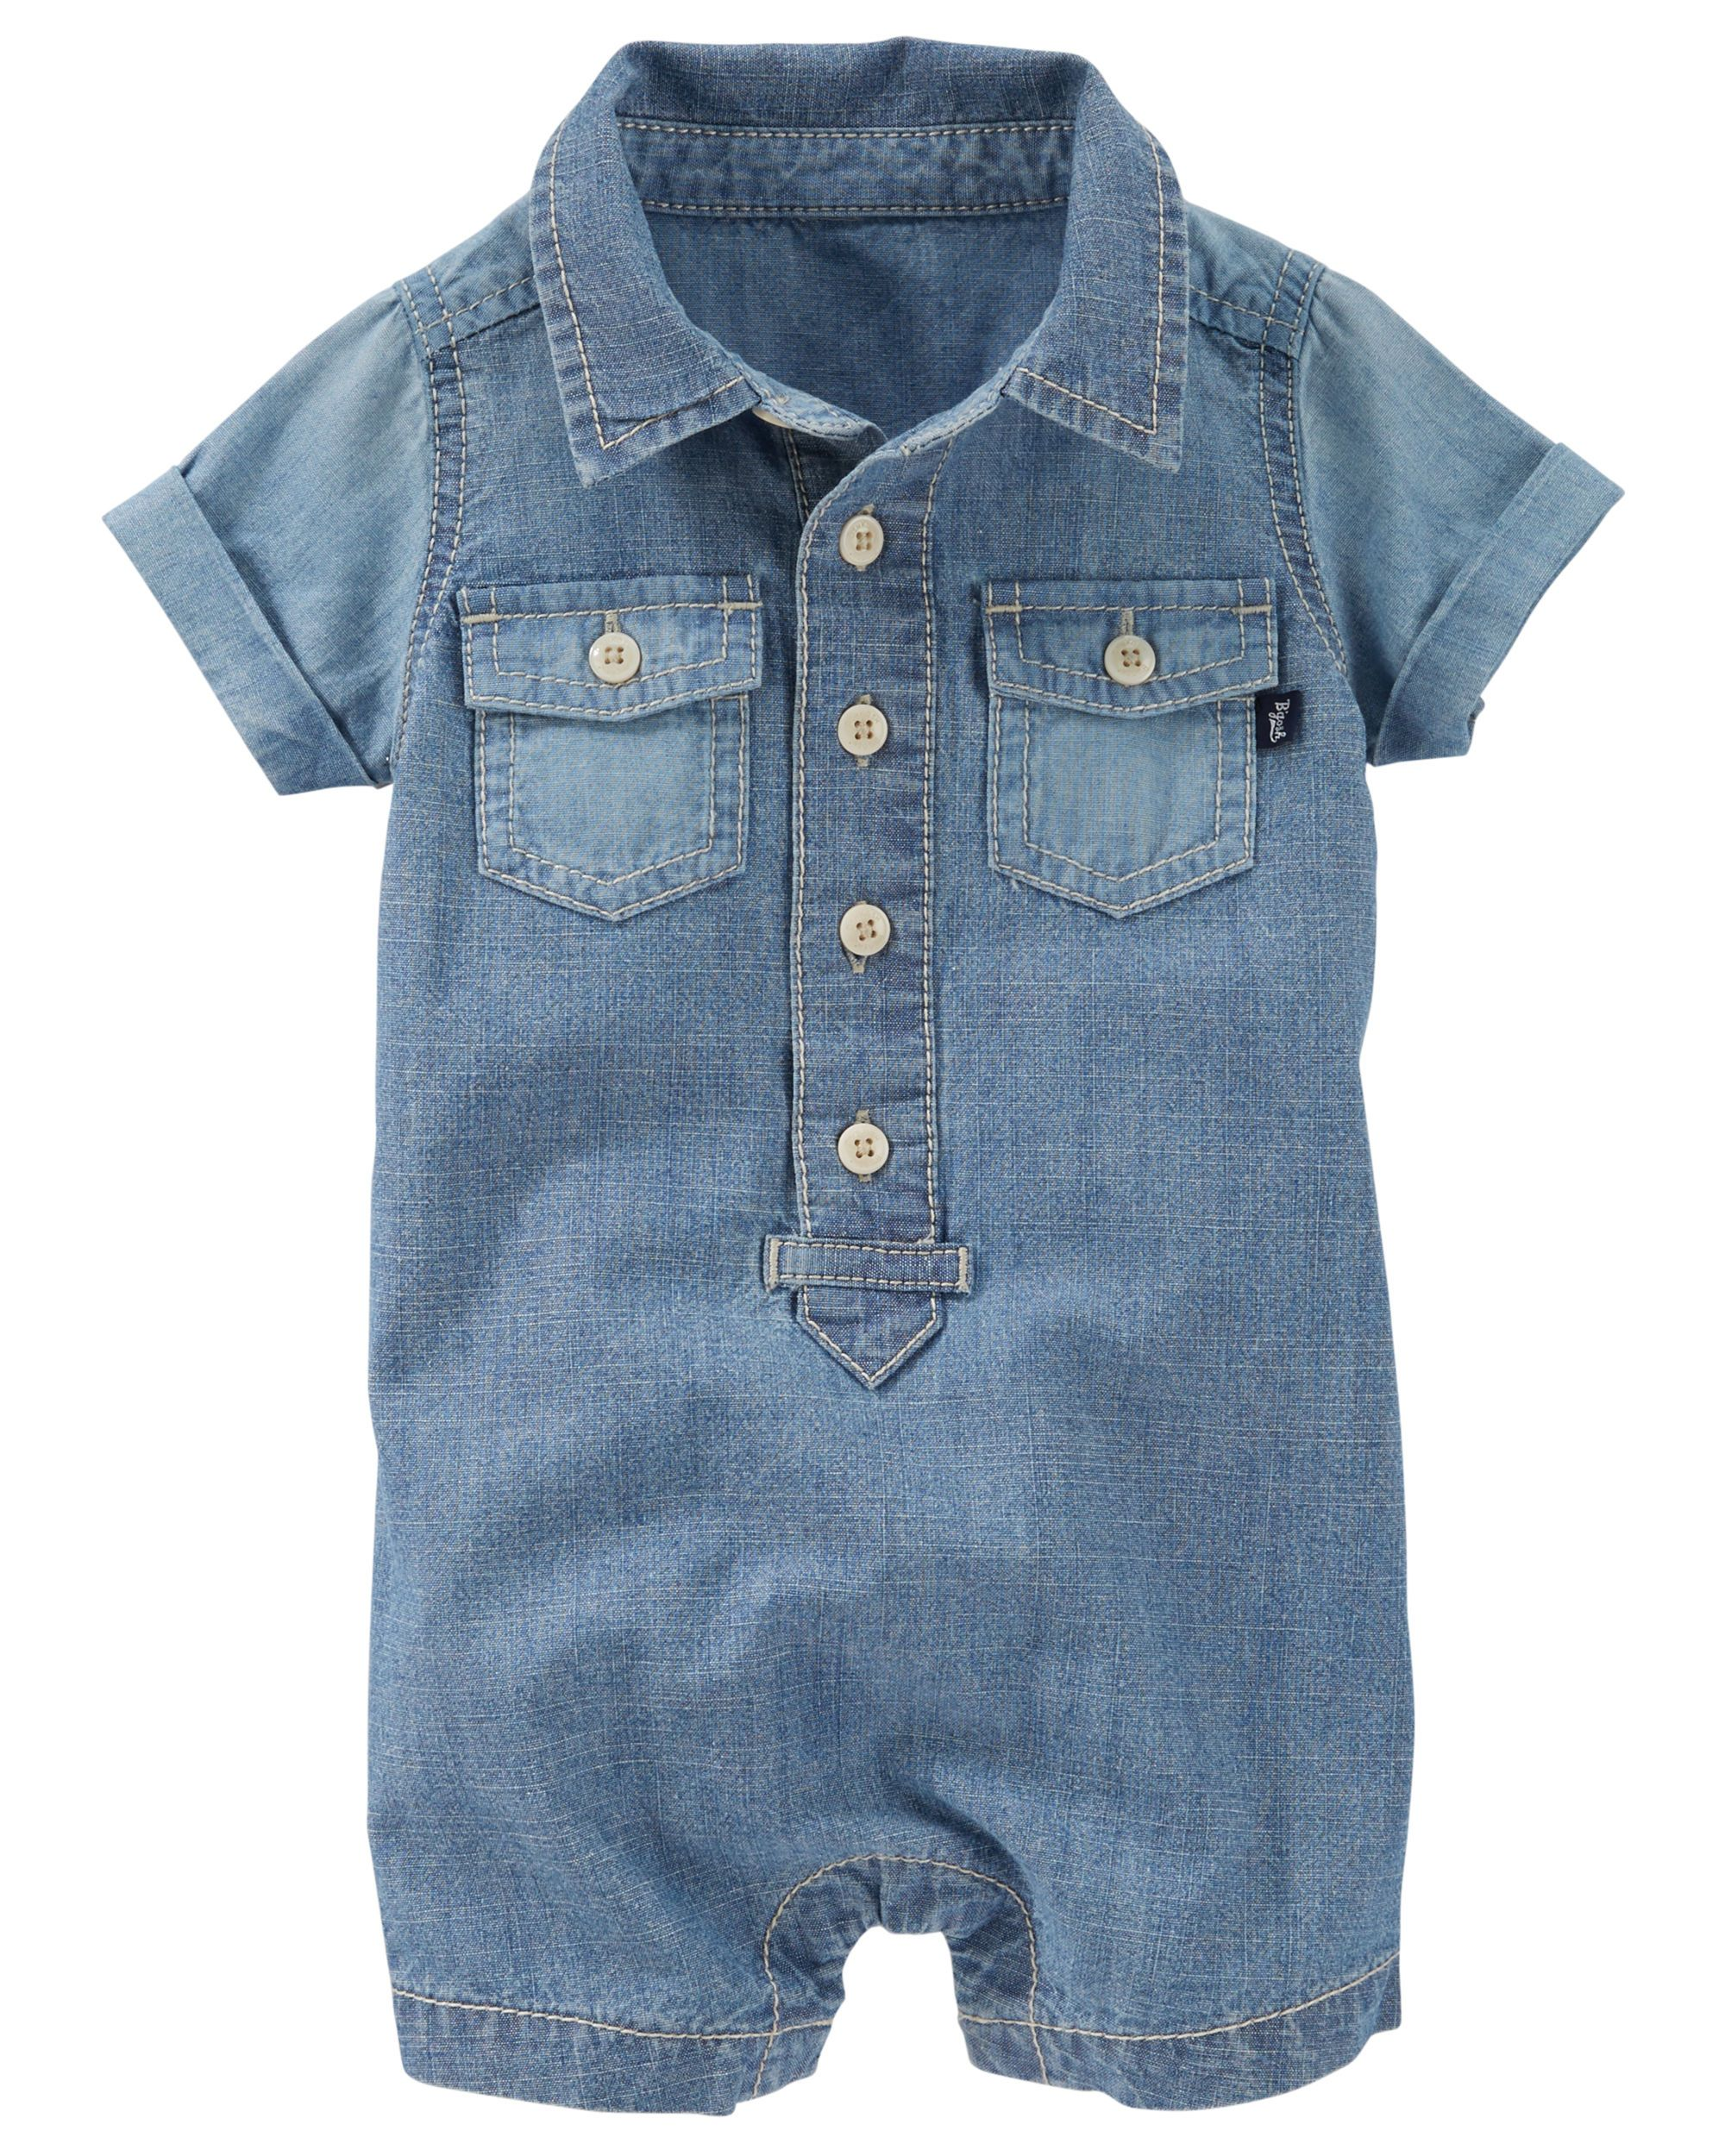 0fae02bd72dc Baby Boy Chambray Romper. Featuring two pockets